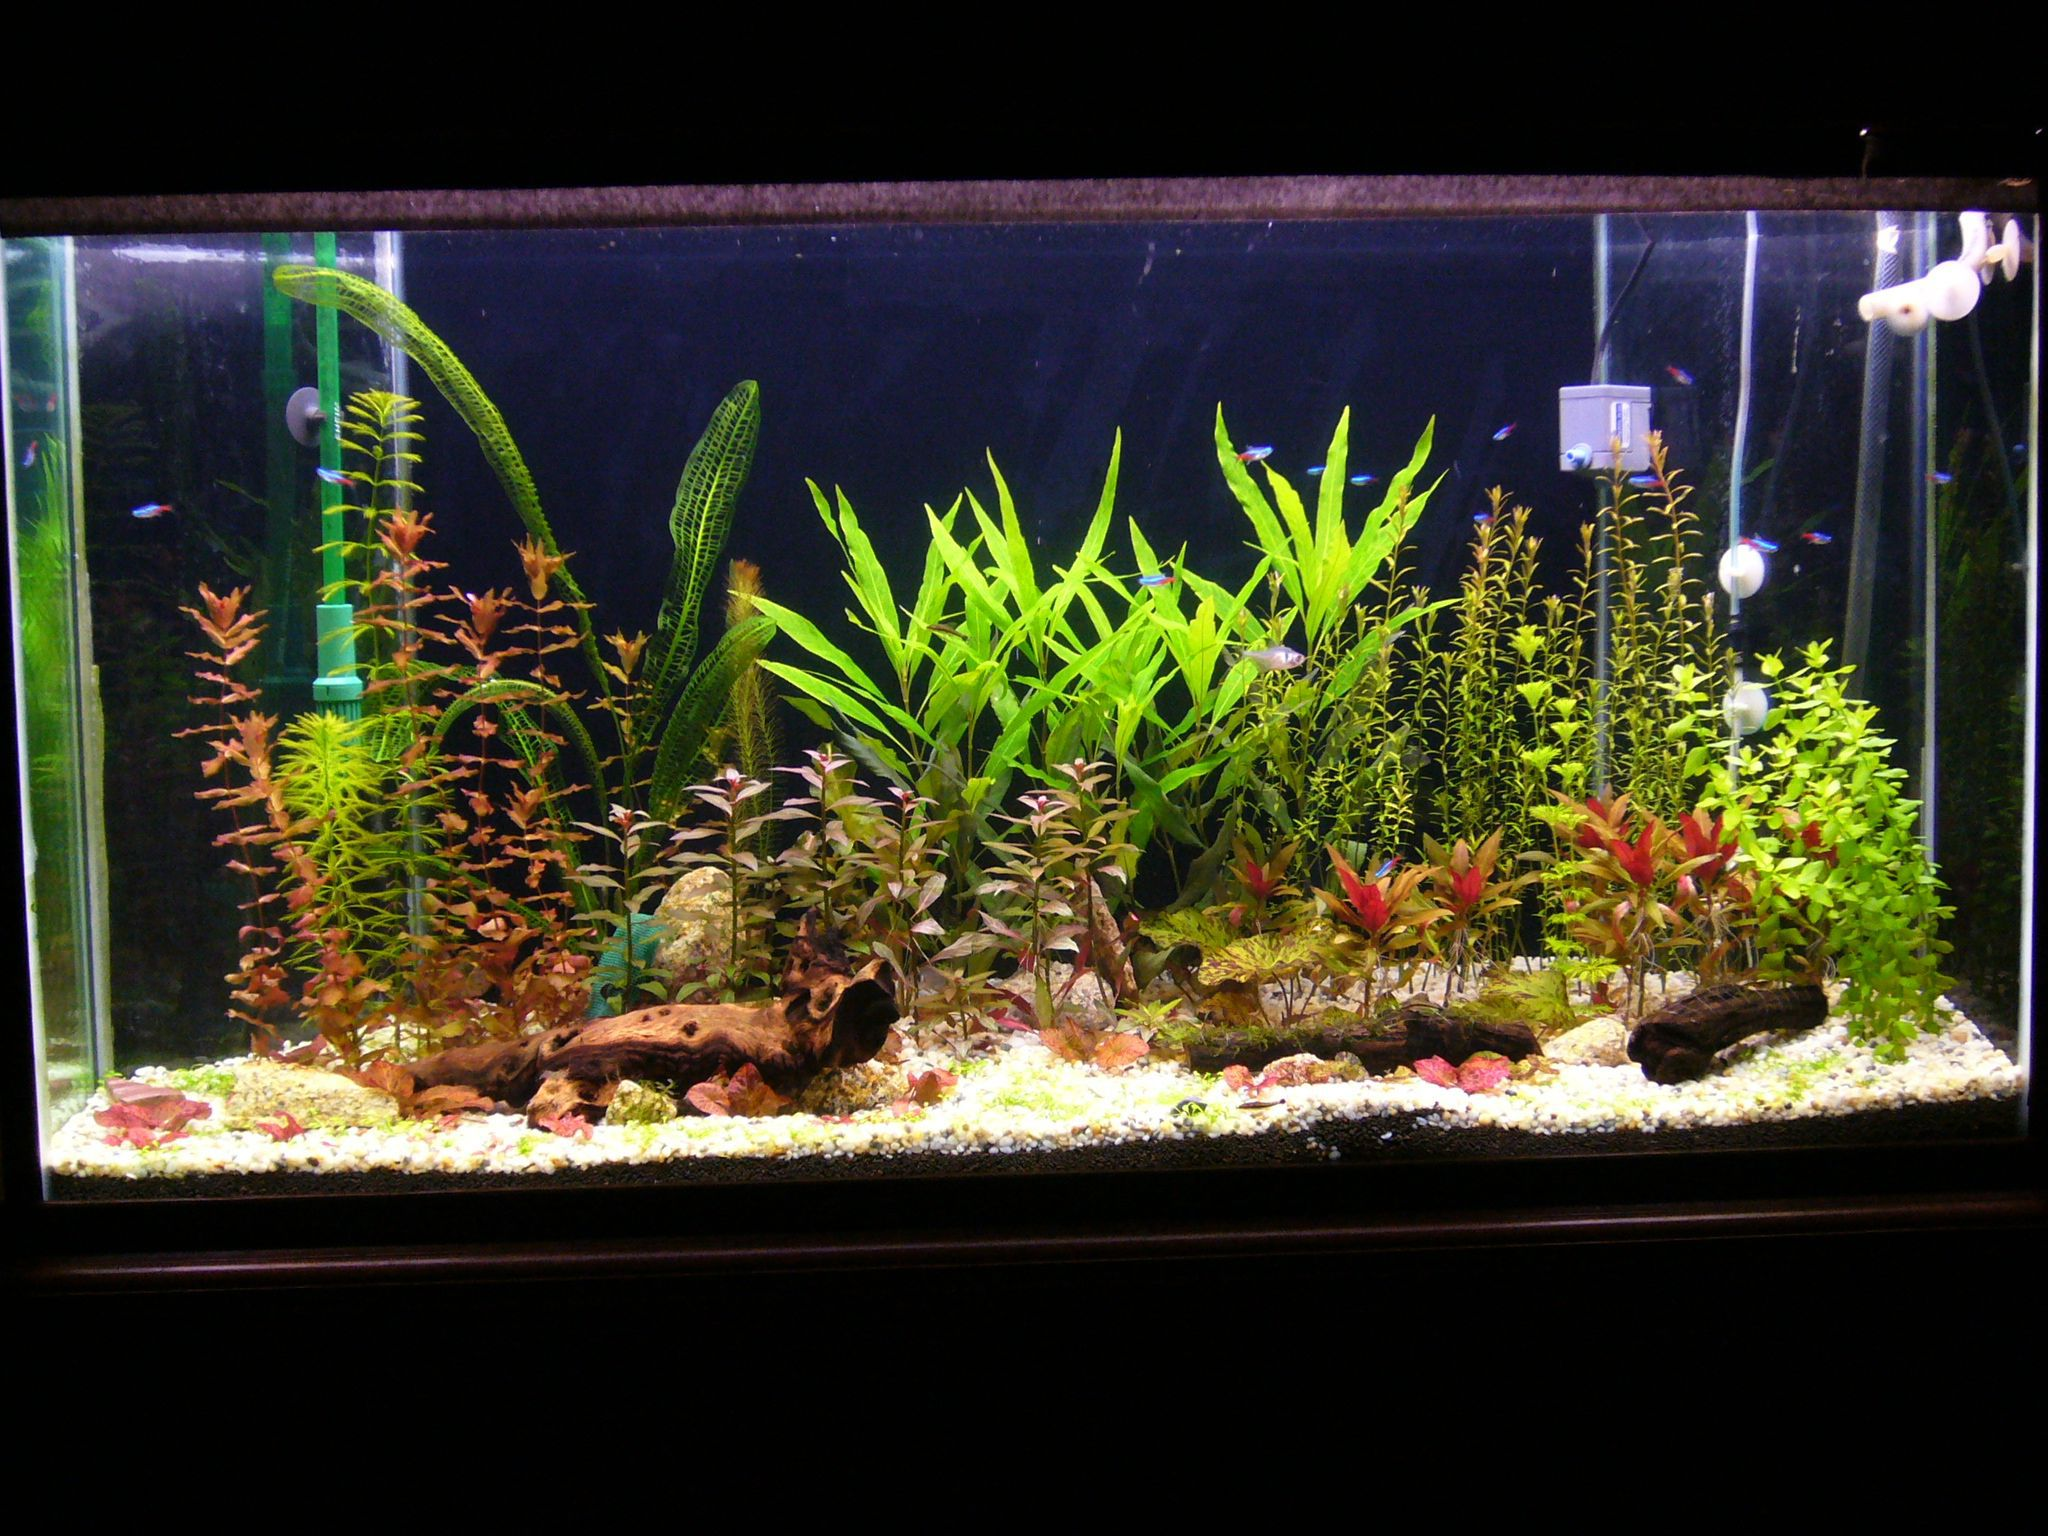 Aquarium plants real or artificial for Aquarium fish online